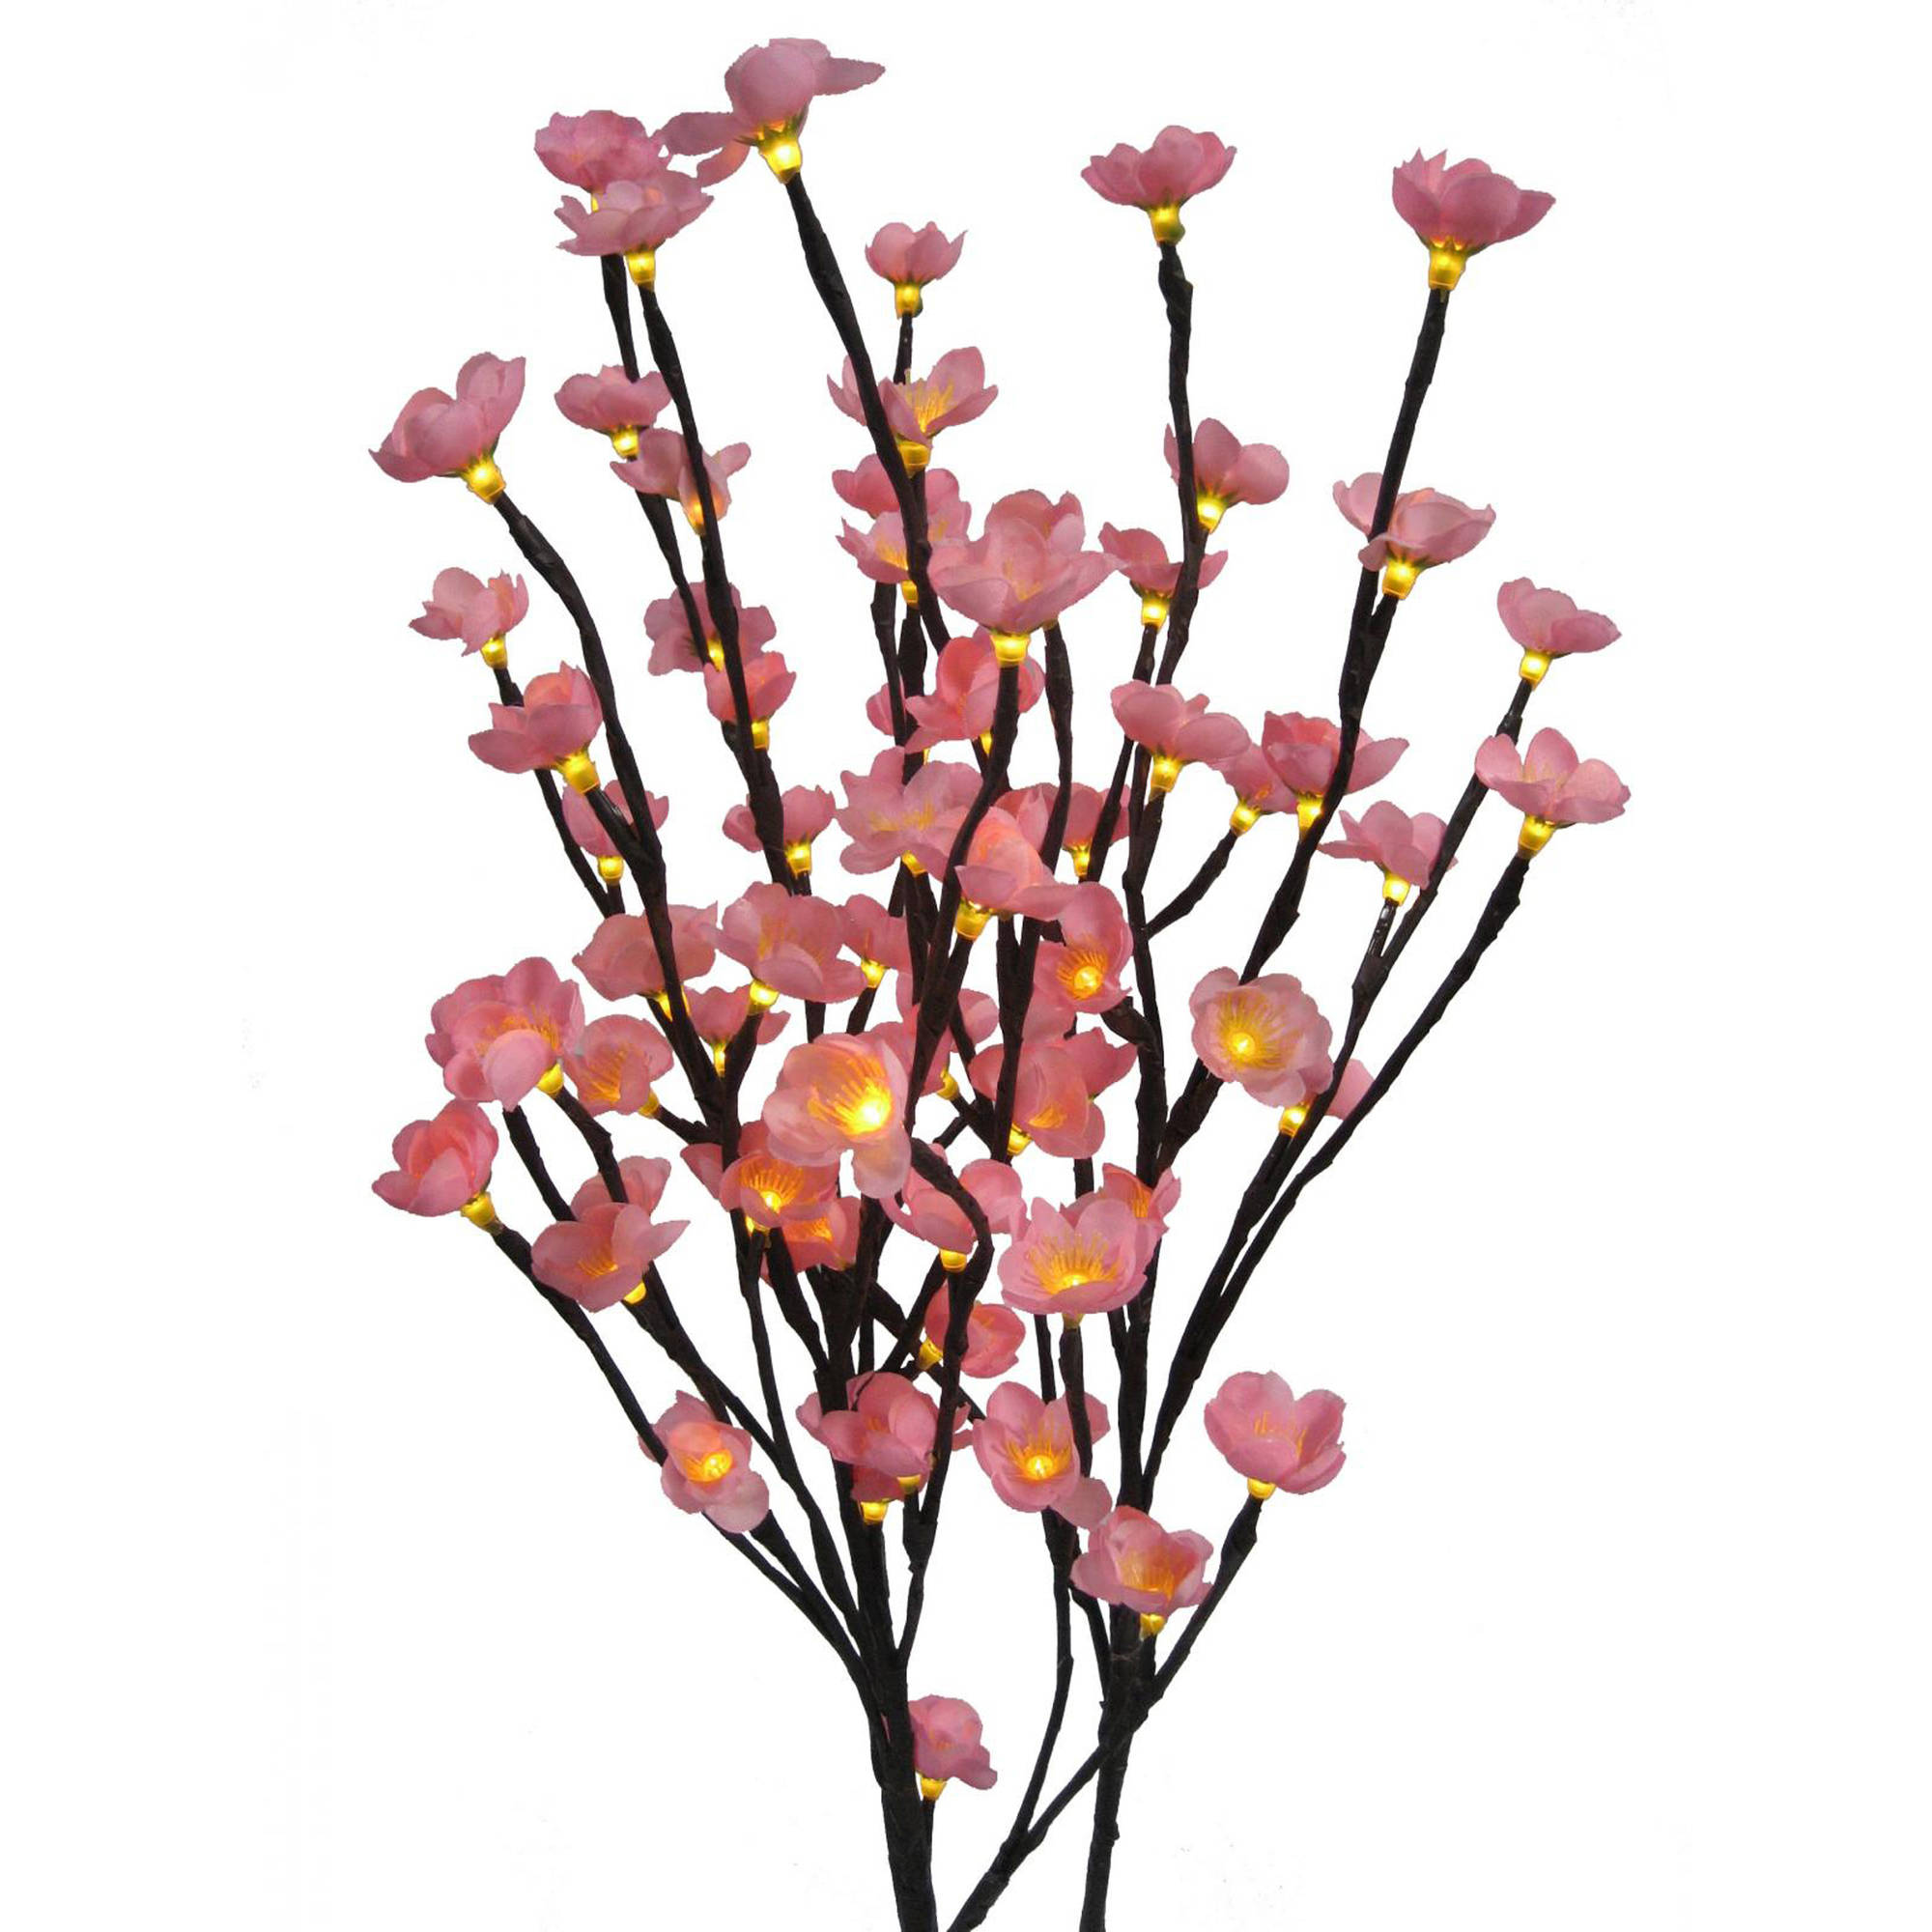 Creative Motion 11480 Cherry Blossom Lights - 31.4 inch Height - 3 branches with an adapter